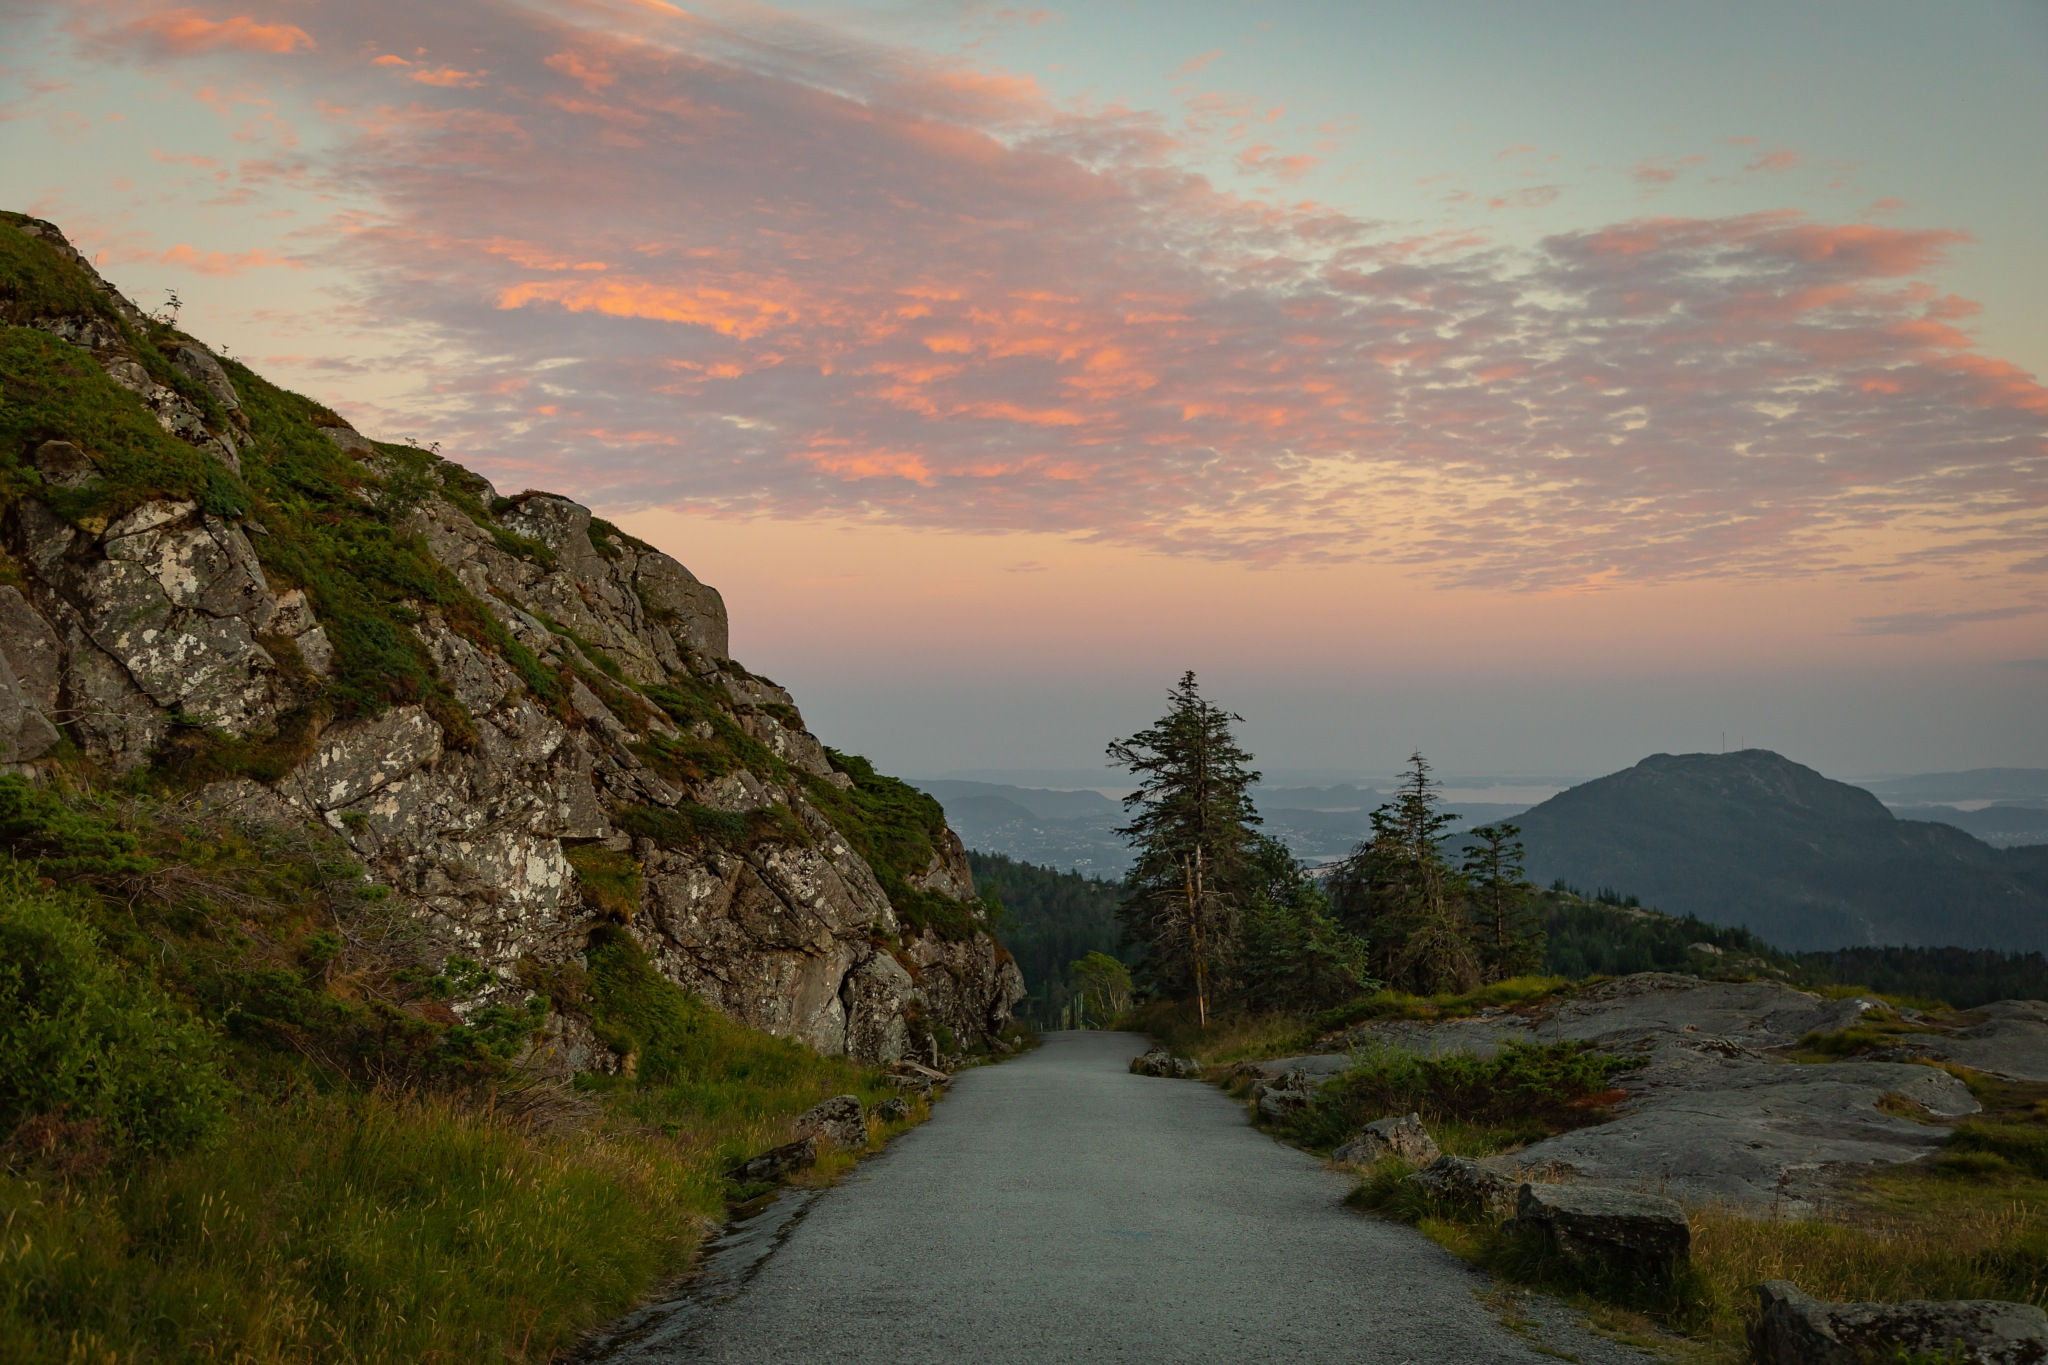 Sunset over Bergen by Svein Erik Andresen